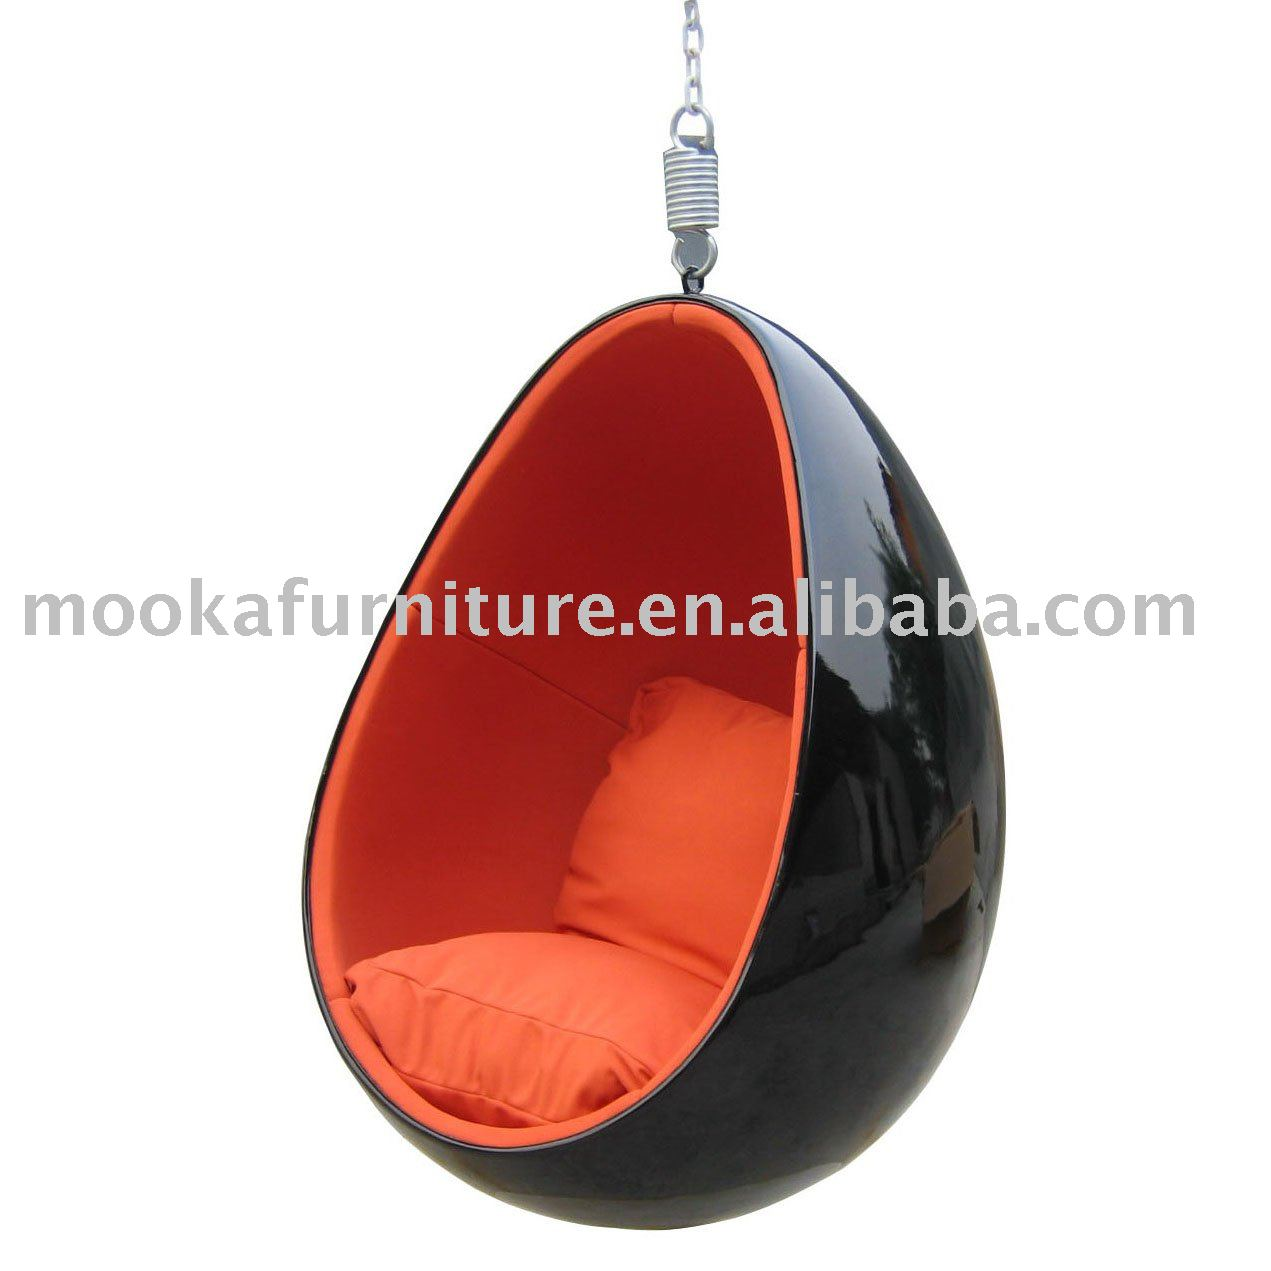 Ei h lse stuhl h ngen eero aarnio wohnzimmer sessel for Suspended egg chair